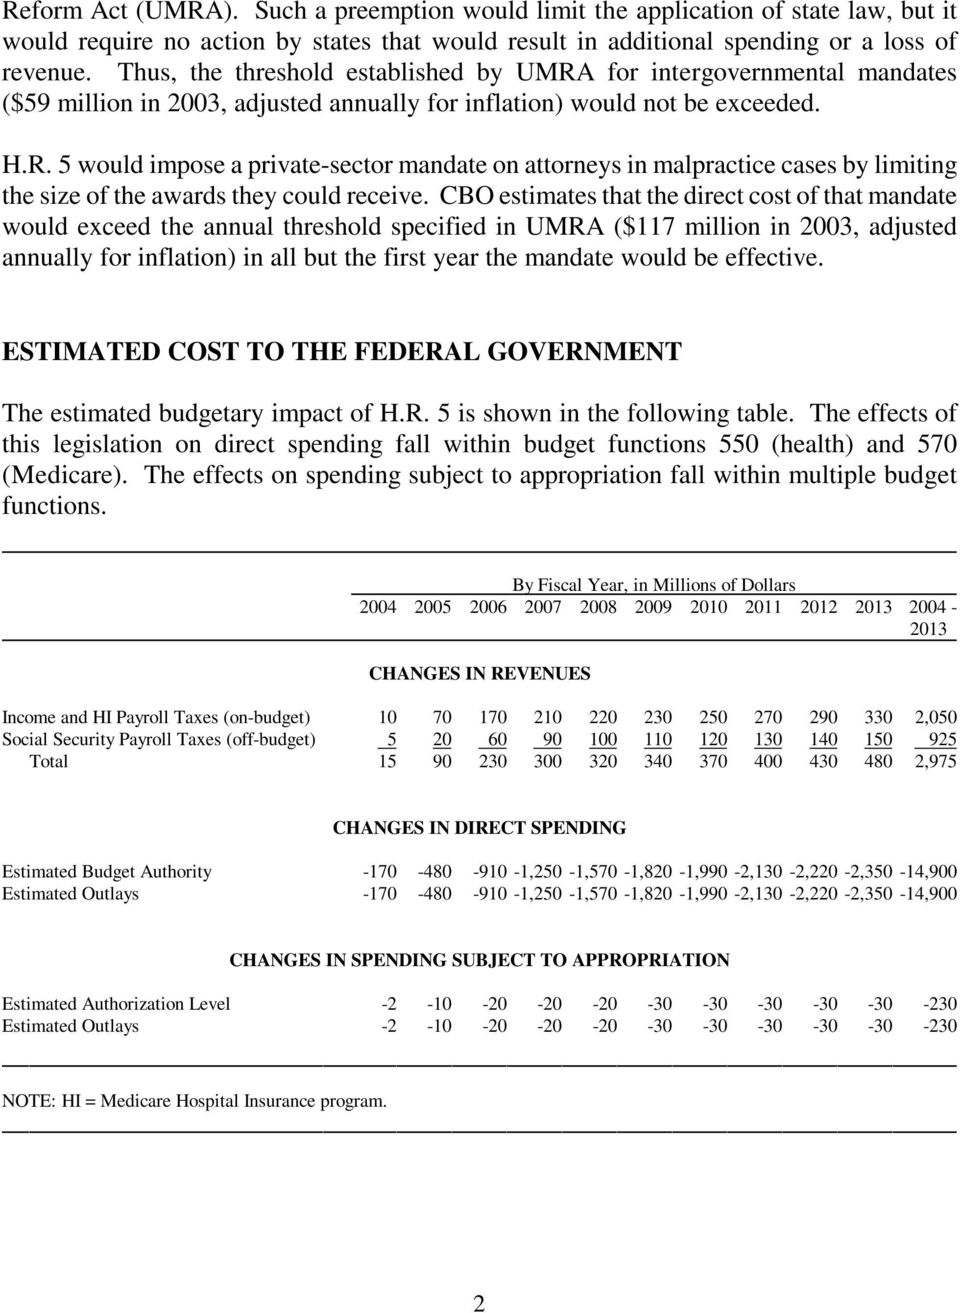 CBO estimates that the direct cost of that mandate would exceed the annual threshold specified in UMRA ($117 million in 2003, adjusted annually for inflation) in all but the first year the mandate